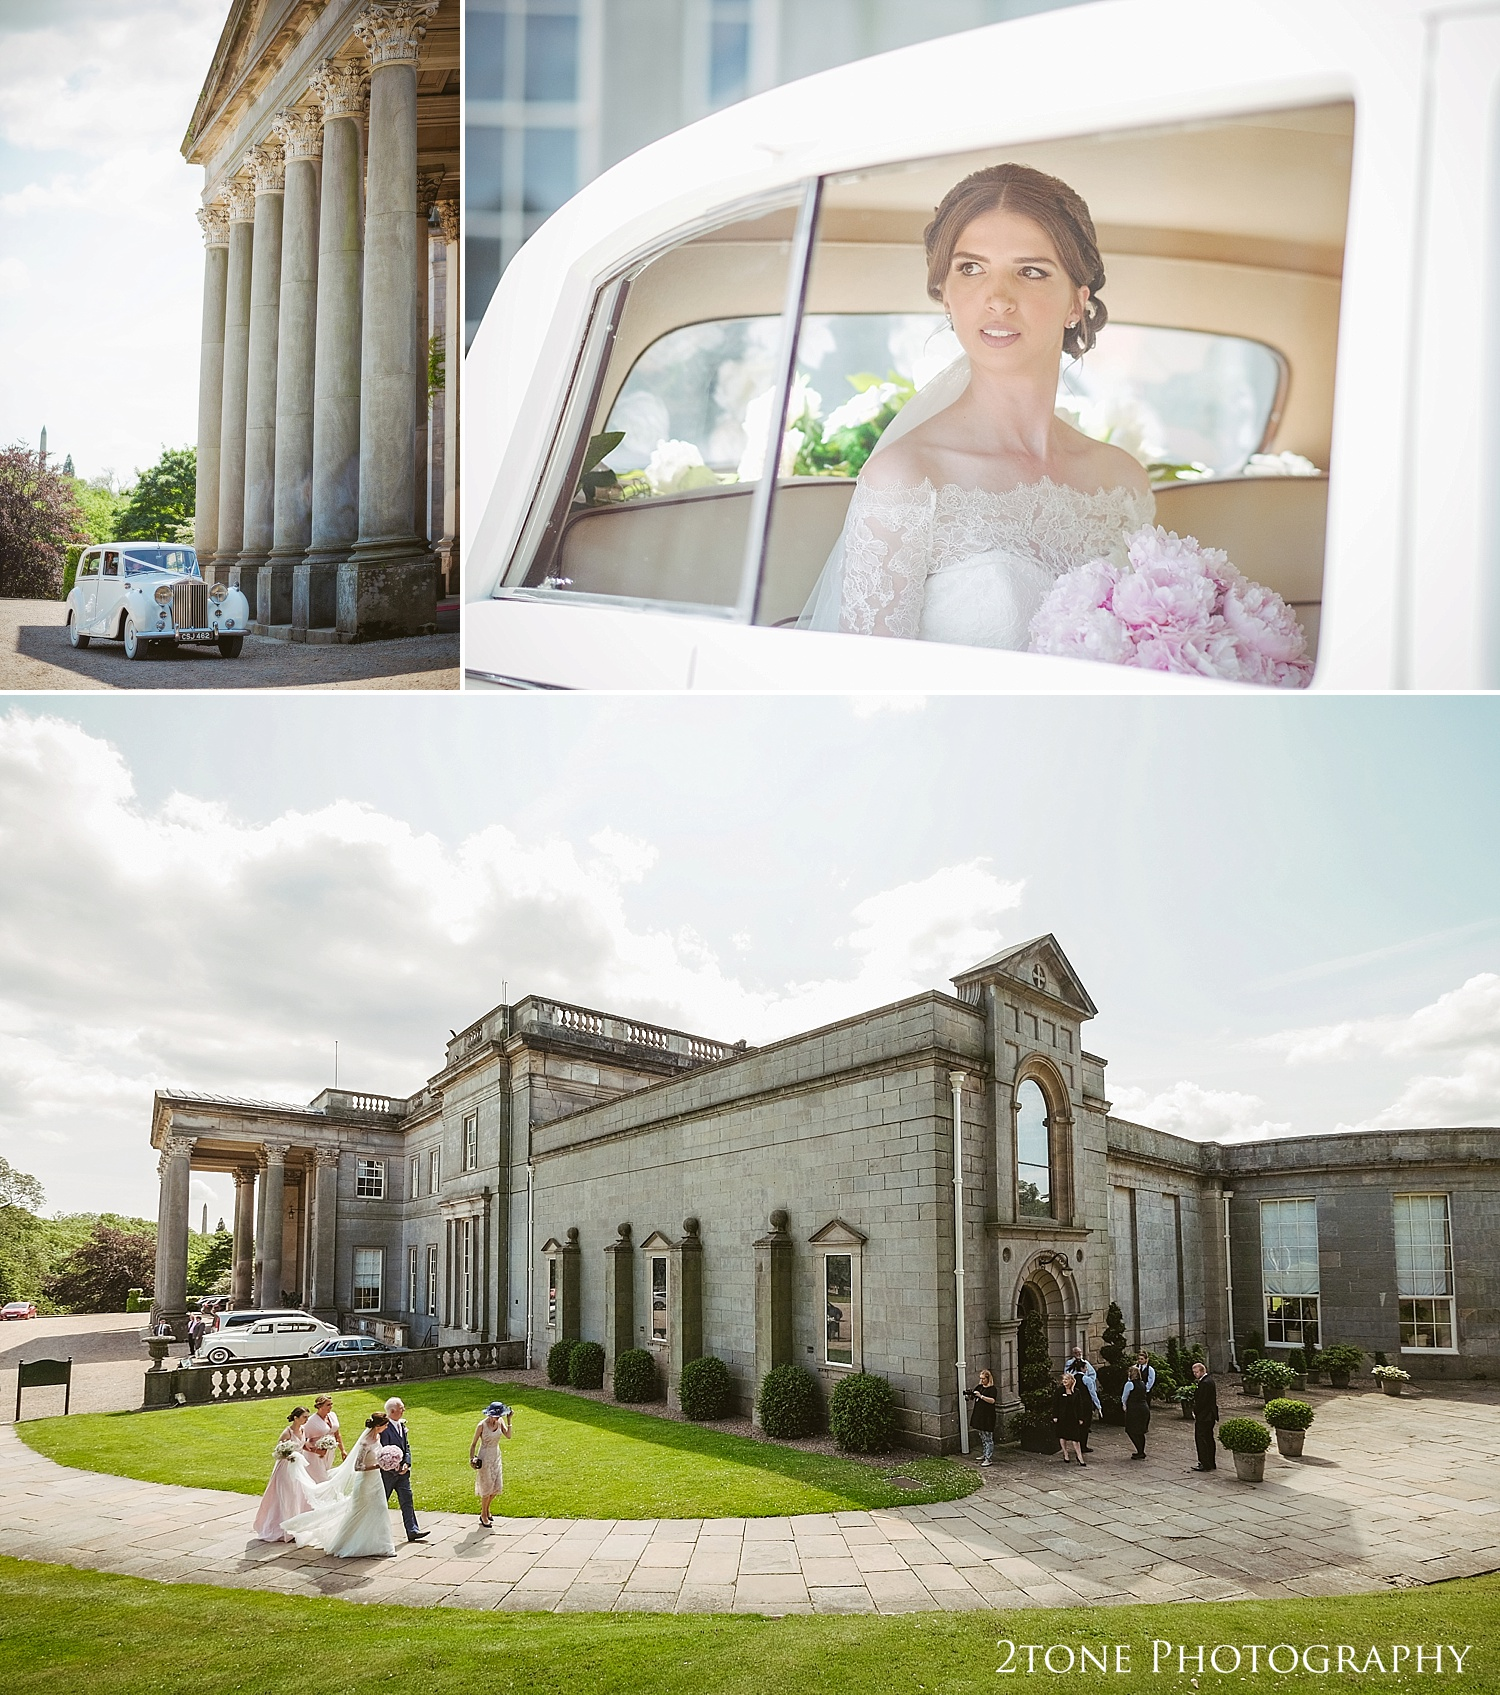 The bride arriving to Wynyard Hall by Durham based wedding photographers www.2tonephotography.co.uk